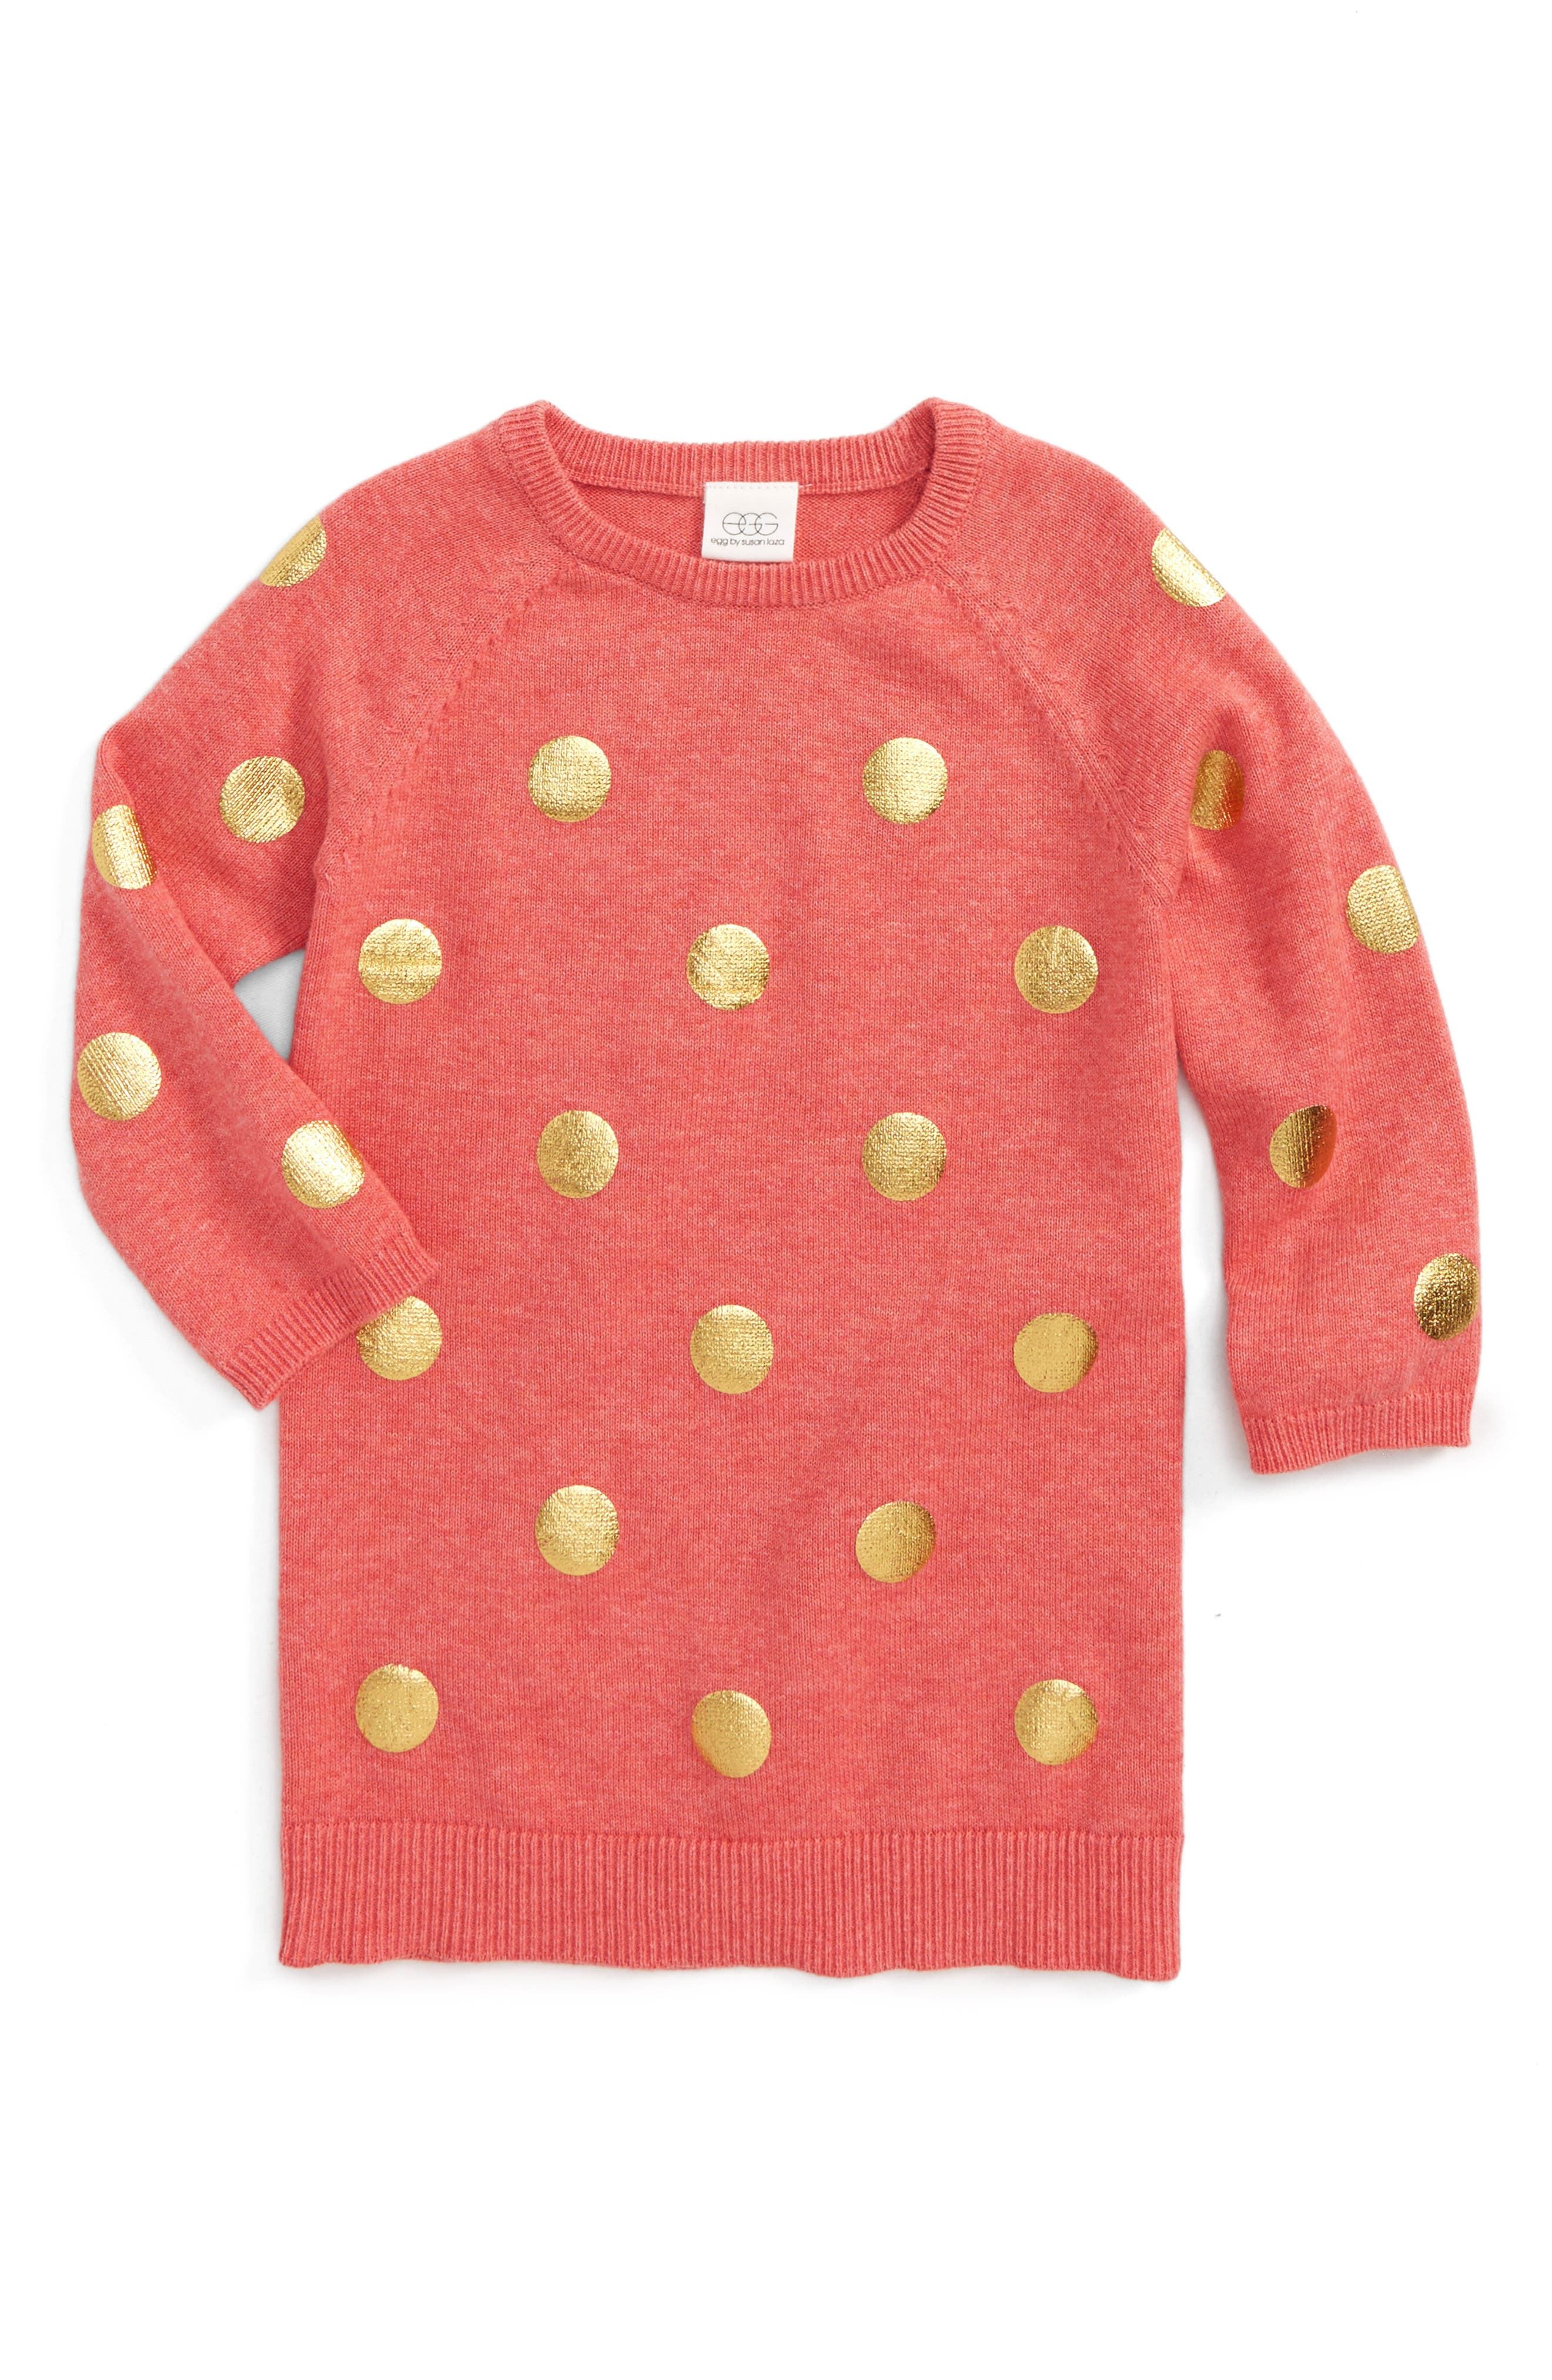 egg by susan lazar Emily Sweater Dress (Baby Girls)